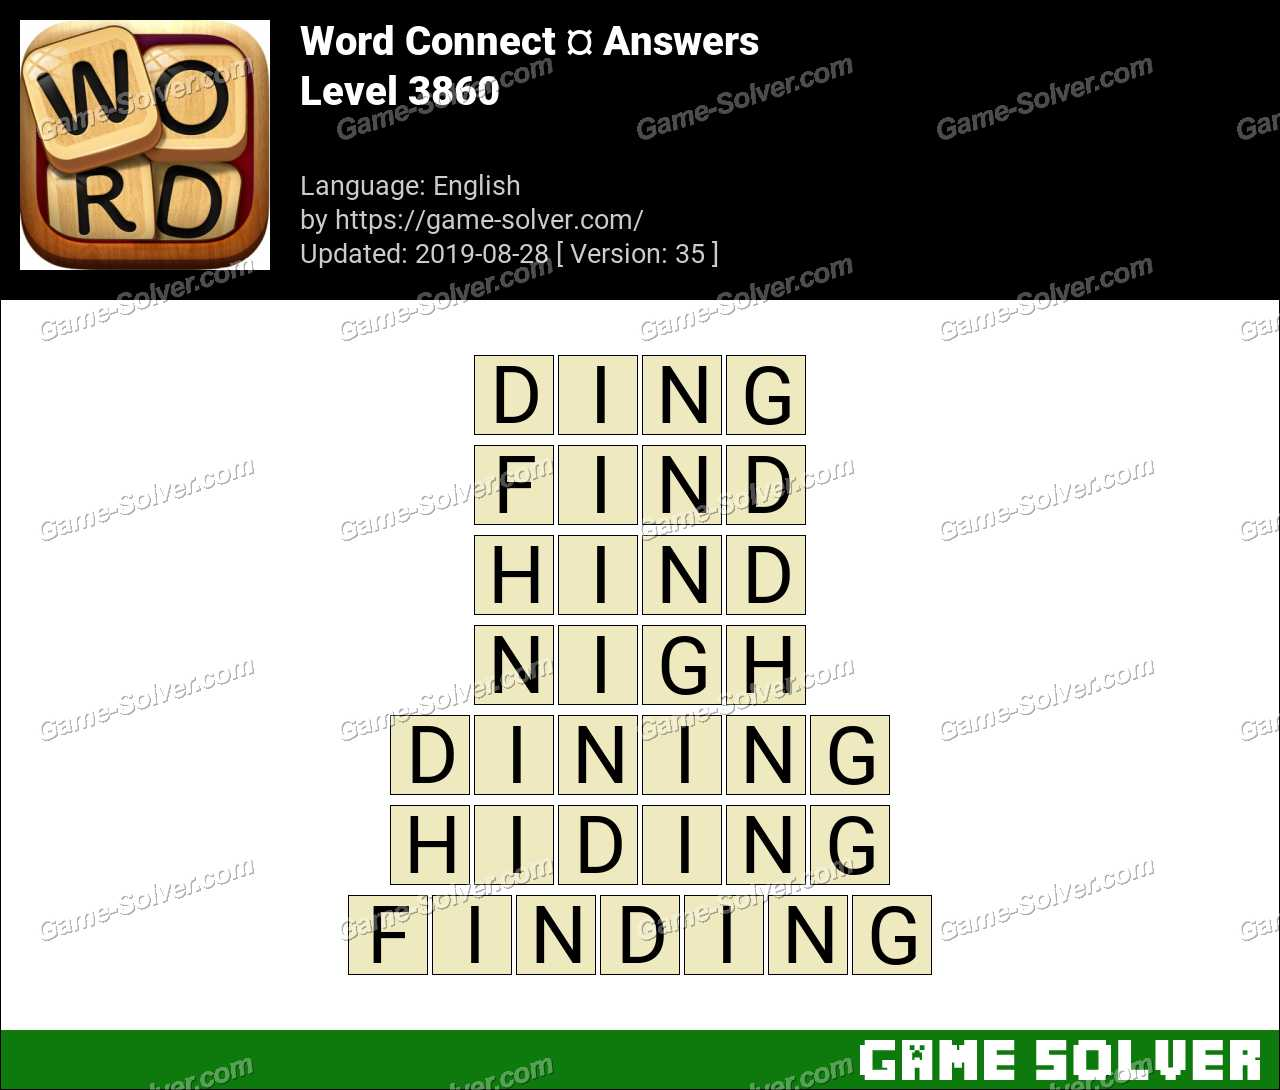 Word Connect Level 3860 Answers